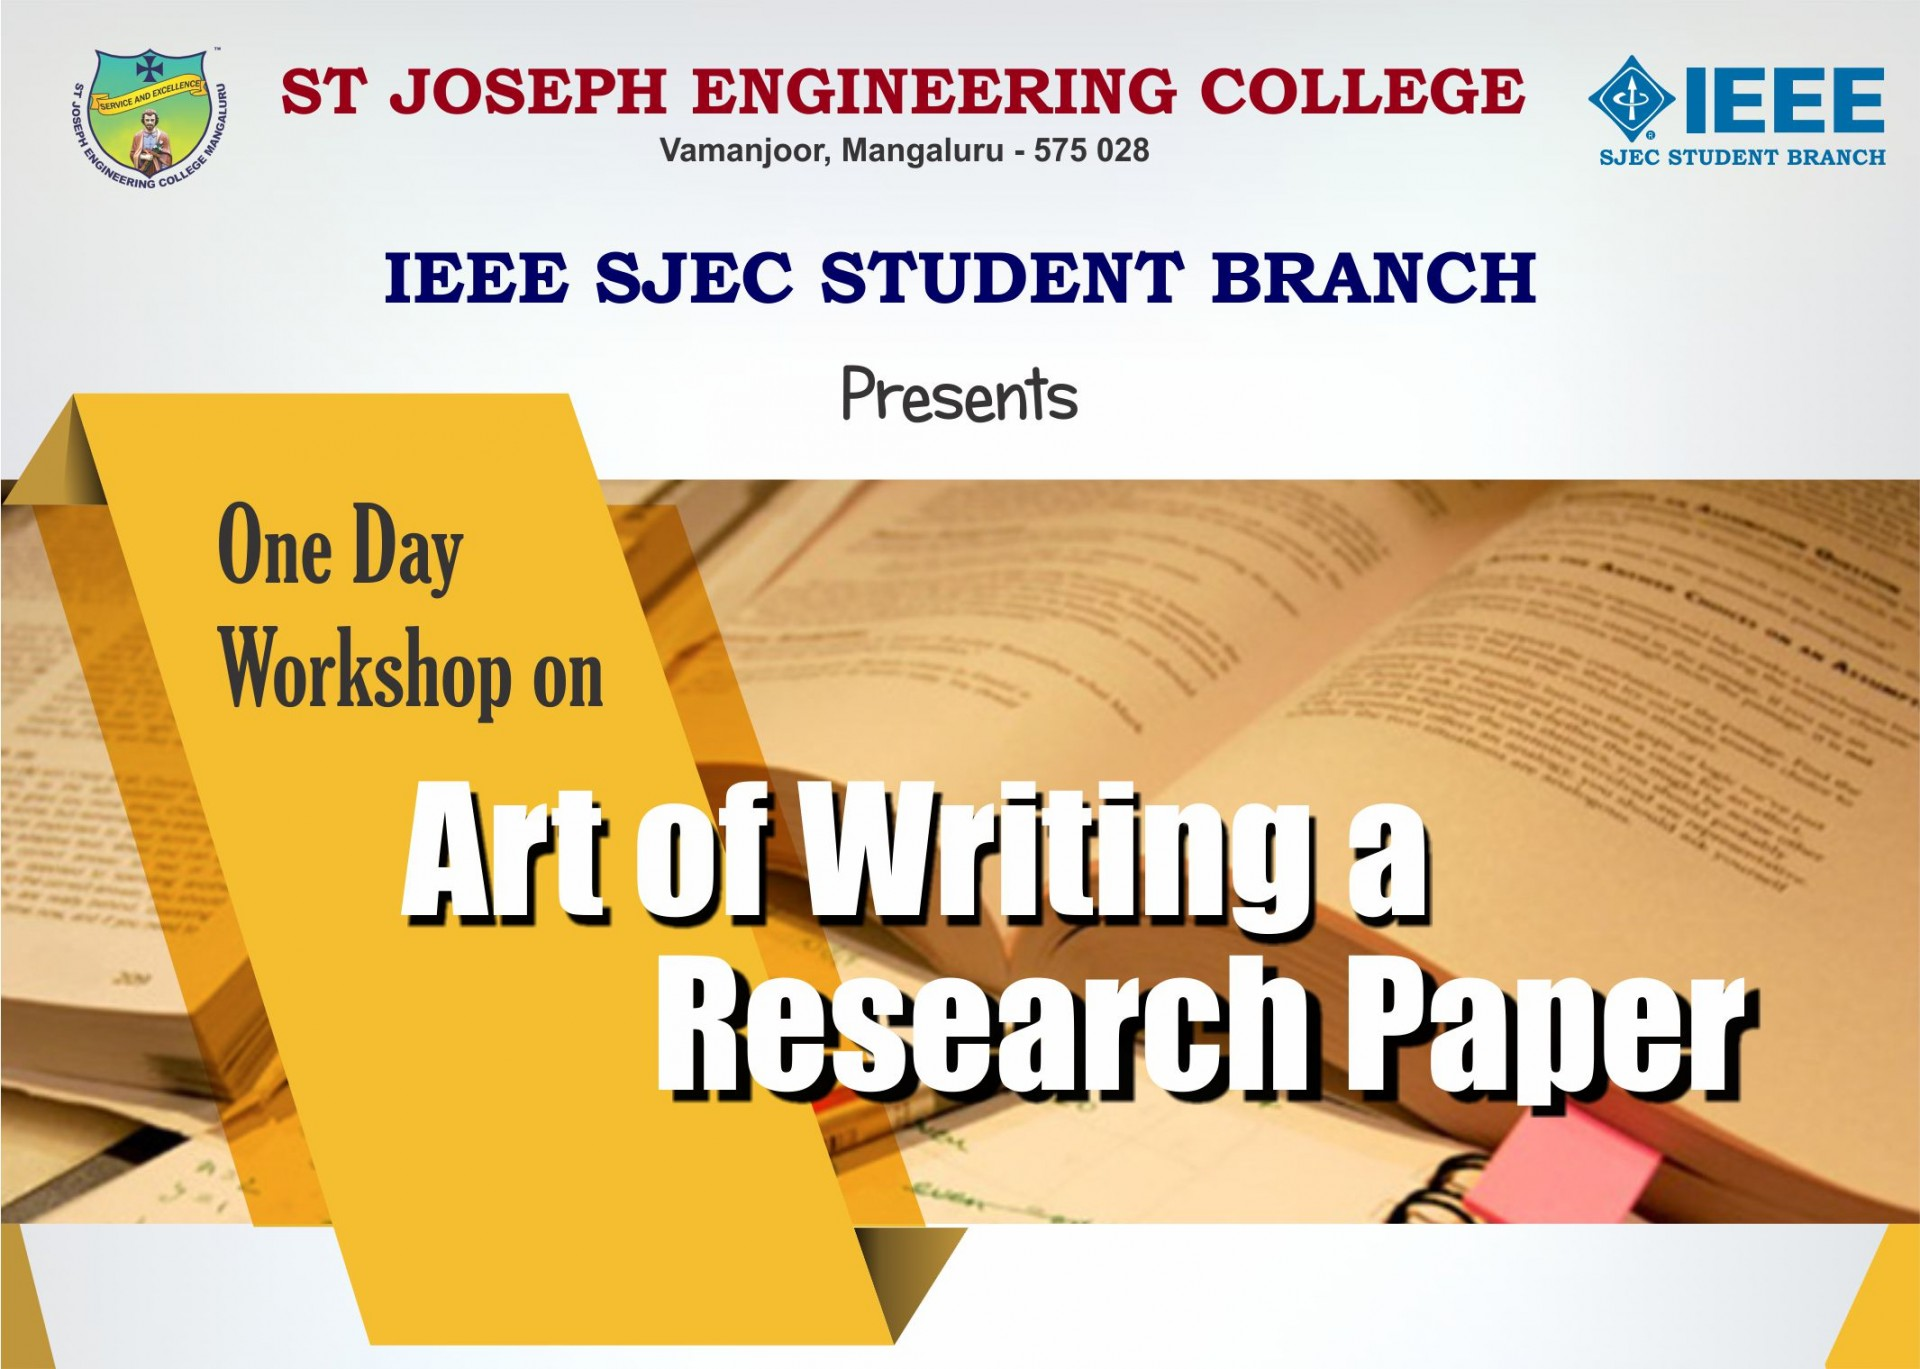 005 Workshop Banner Research Paper Writing Unique Papers A Complete Guide 15th Edition Ebook 16th Pdf Free 1920